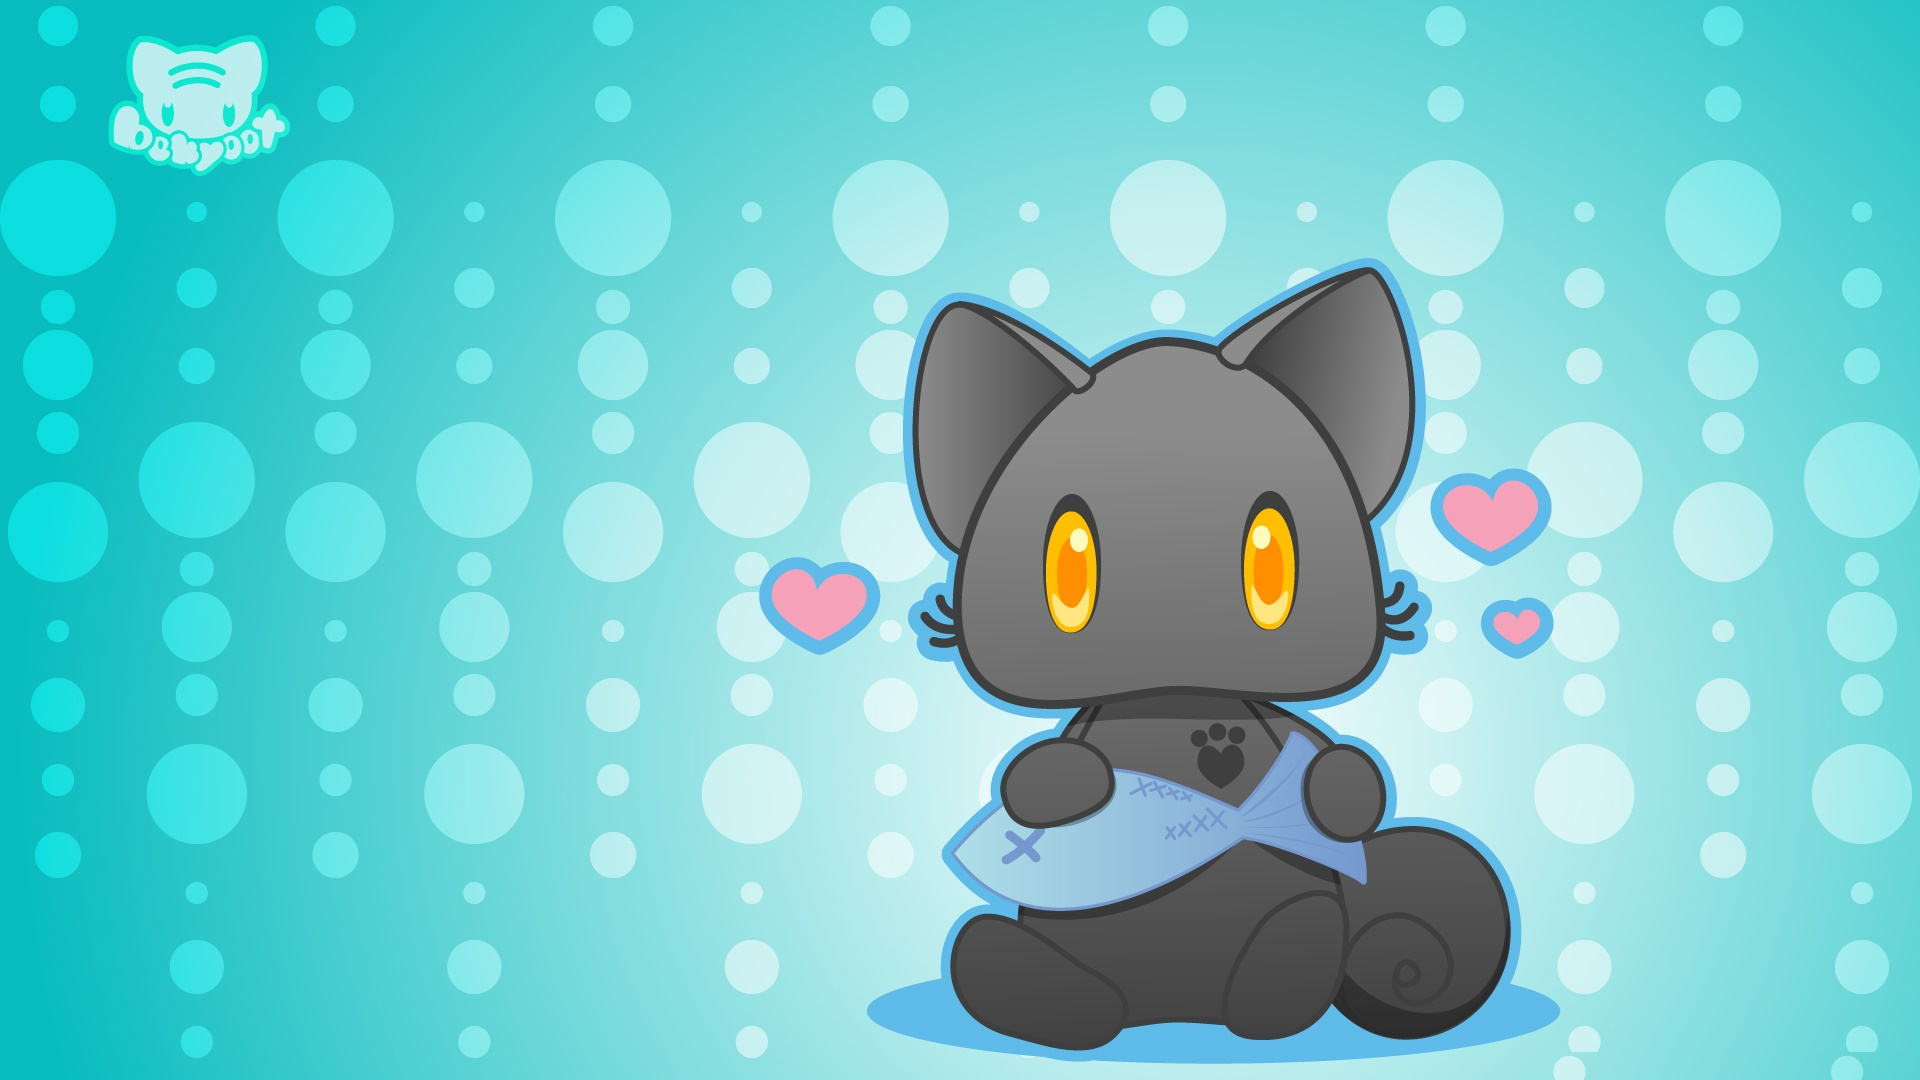 Cute Cartoon Sushi Wallpaper Kawaii Backgrounds Desktop Wallpapers Pixelstalk Net